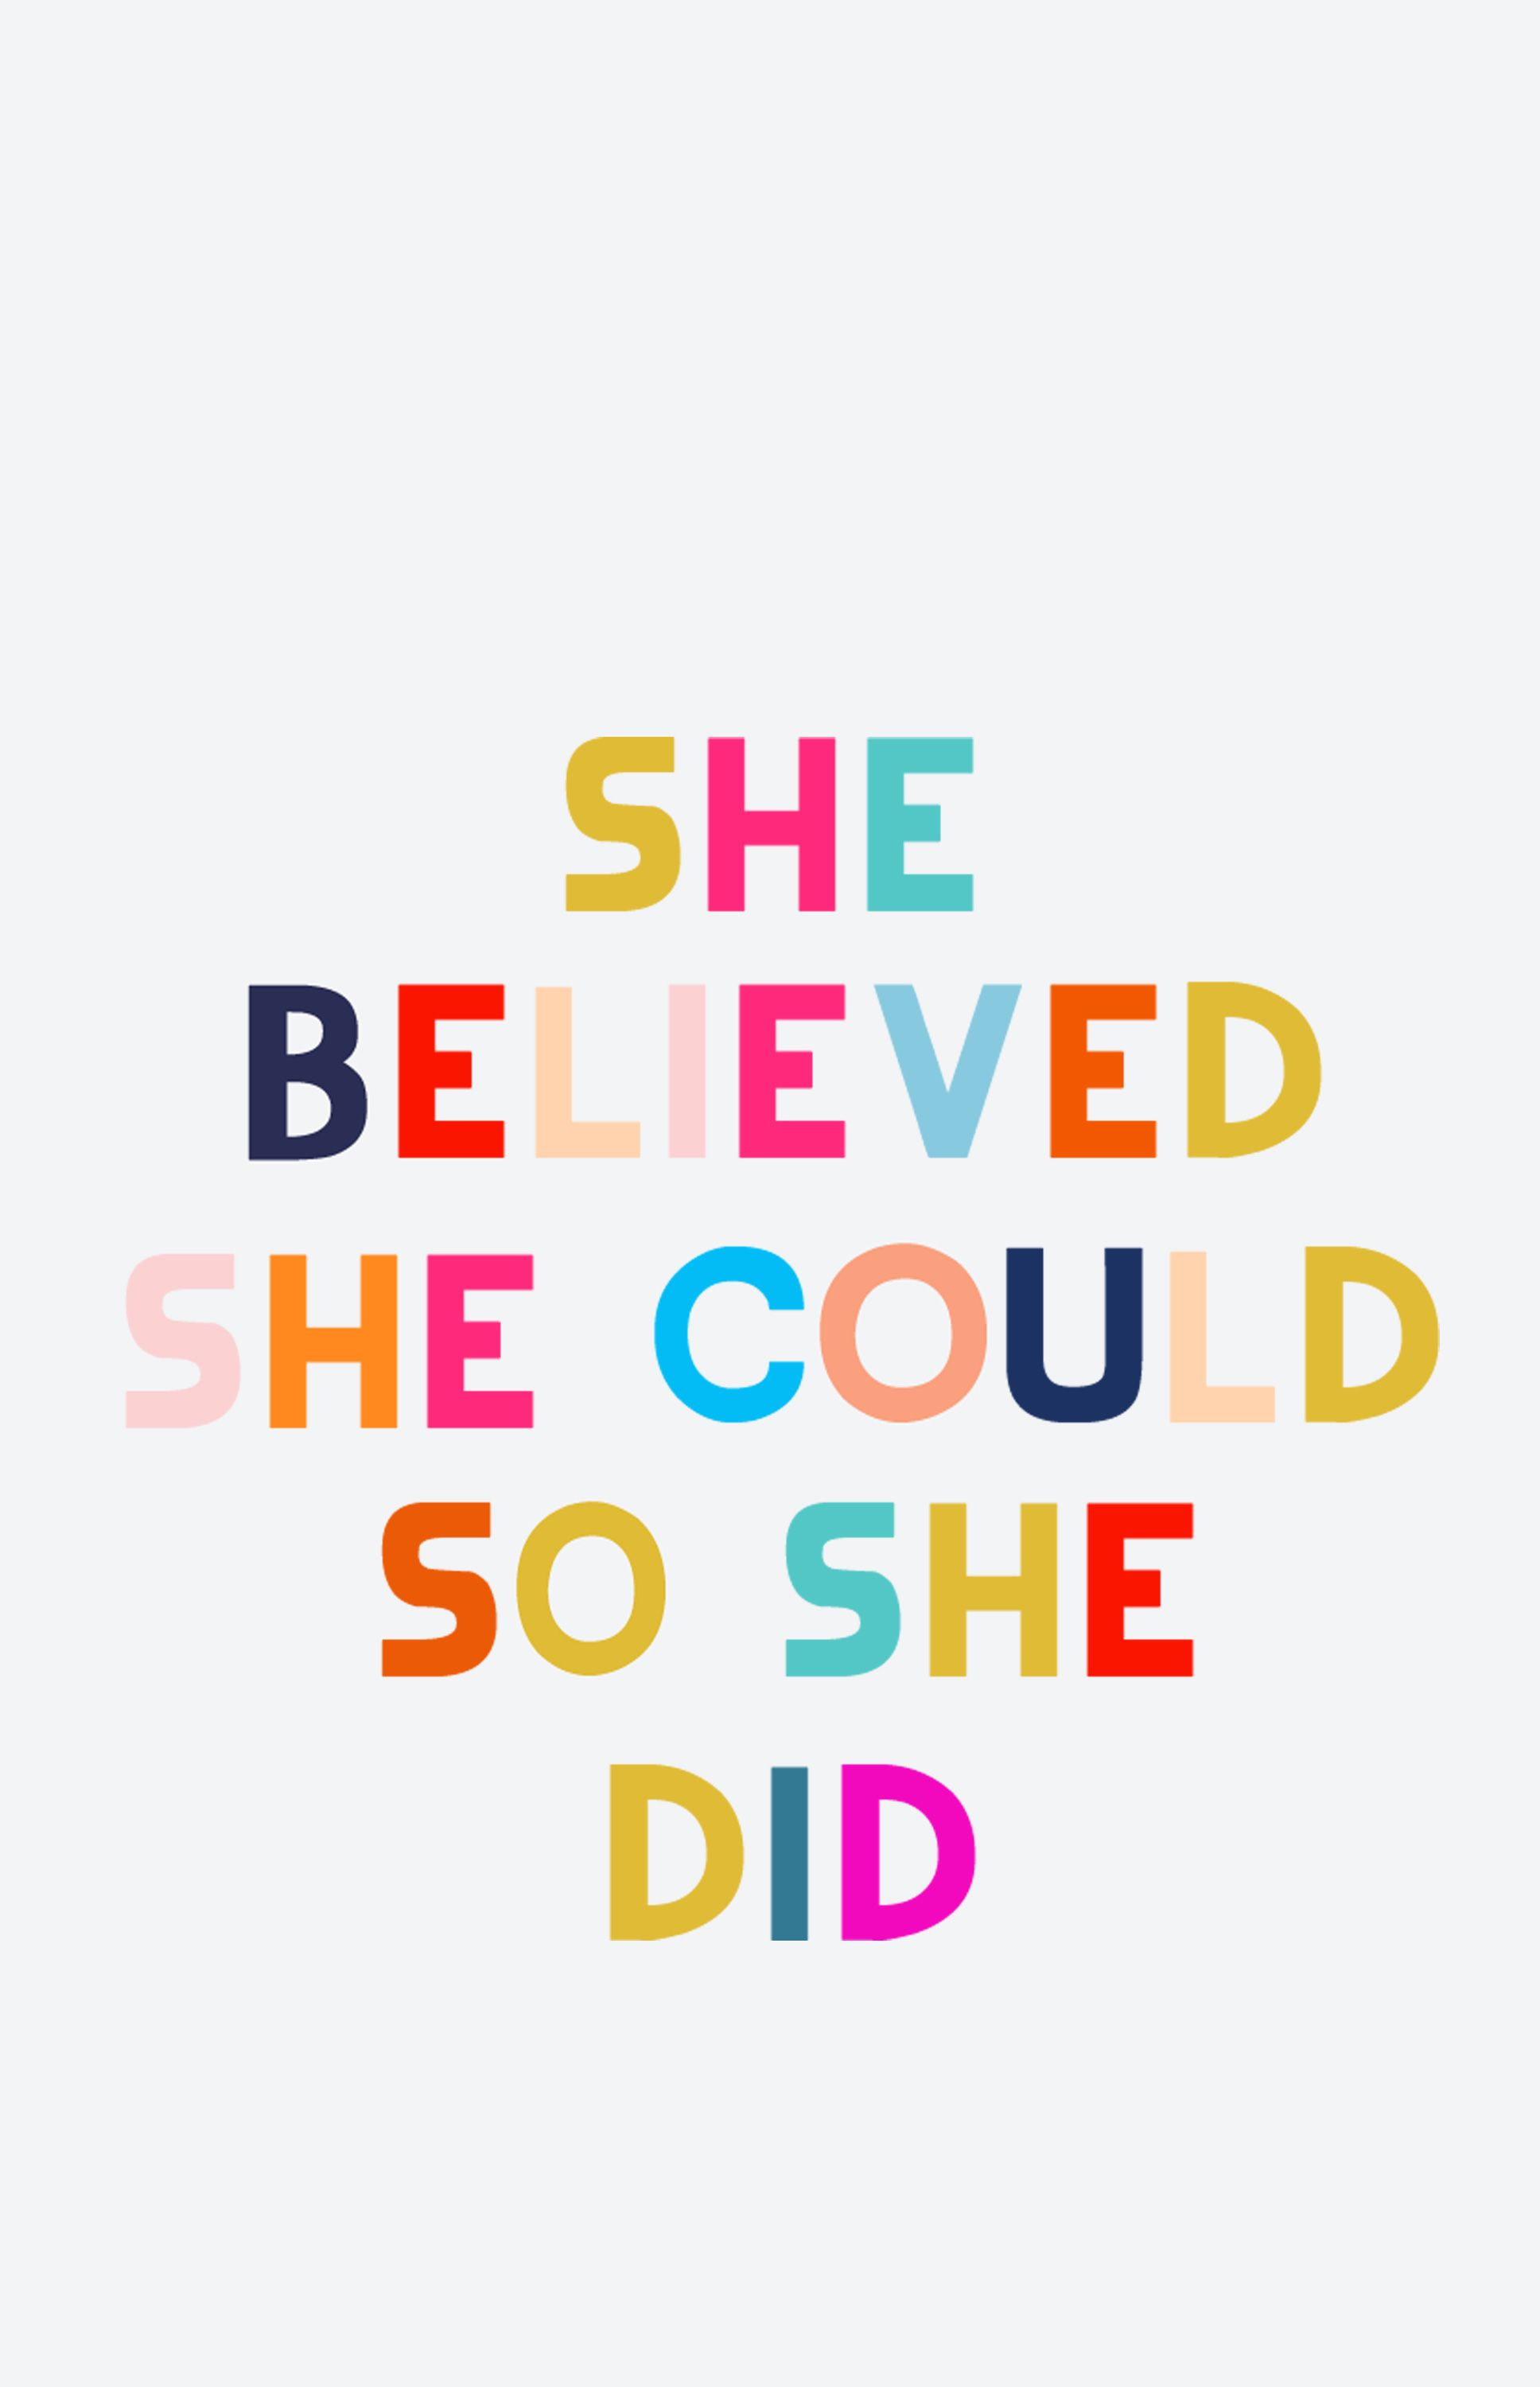 iphone-She-Believed-She-Could-So-She-Did-Wallpaper2.jpg 1 936 × 3 000 pixels